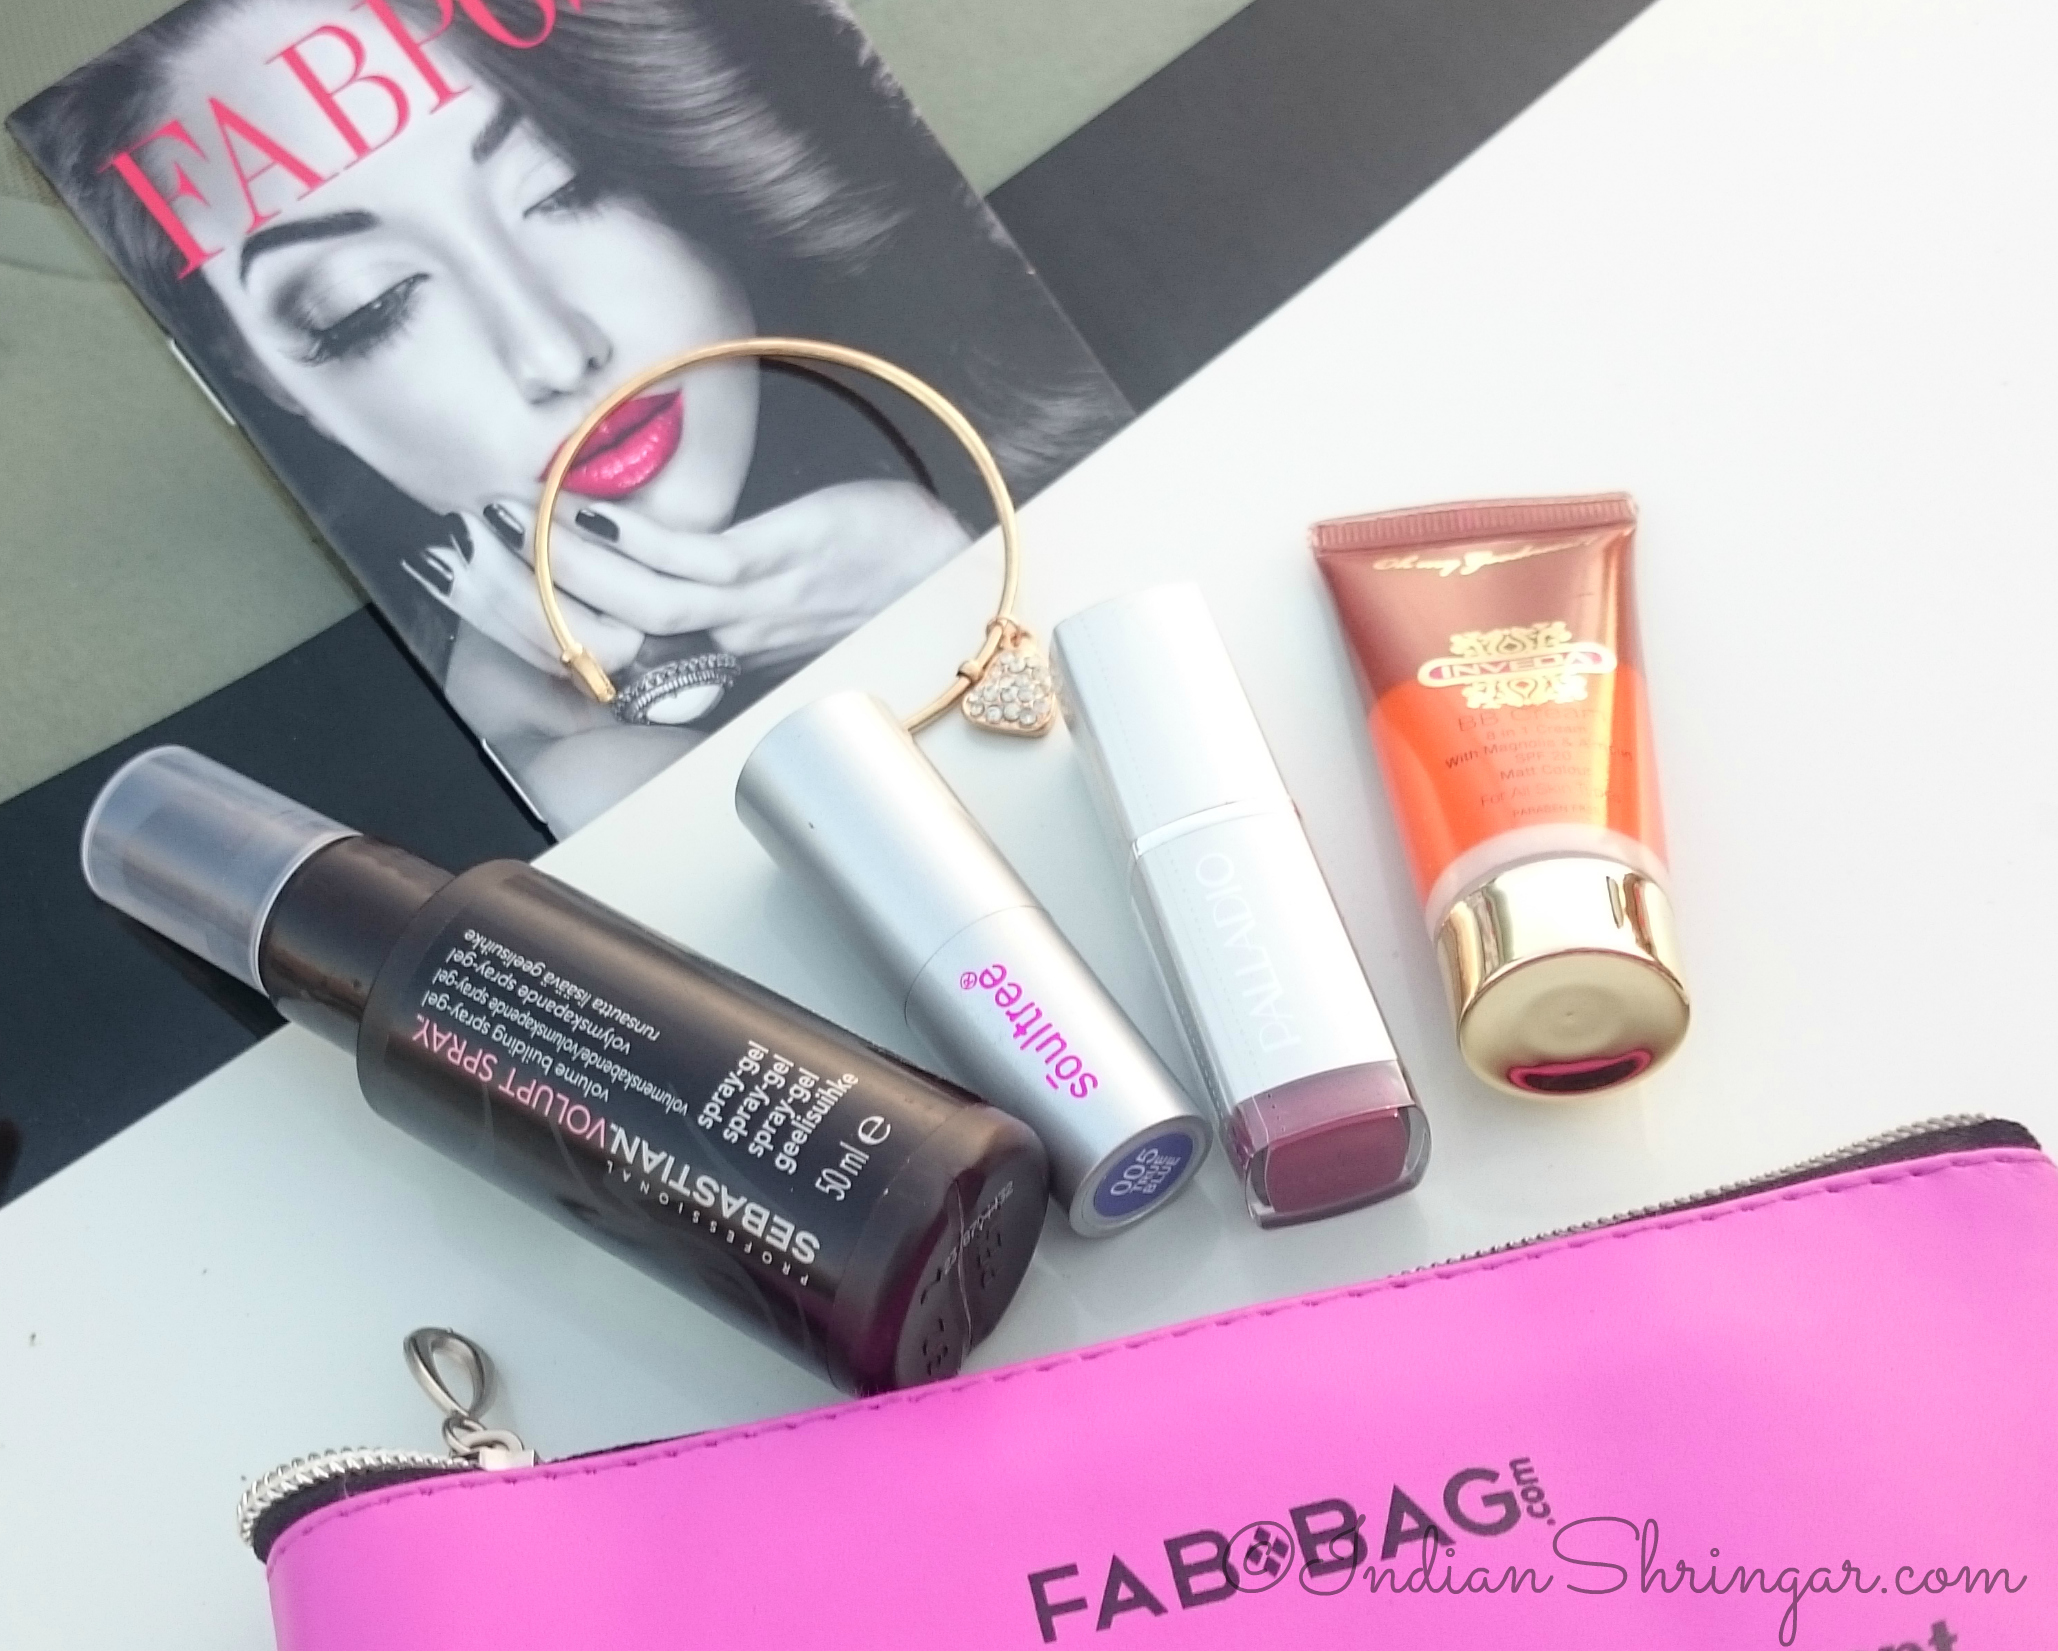 Contents of Fabbag March 2015